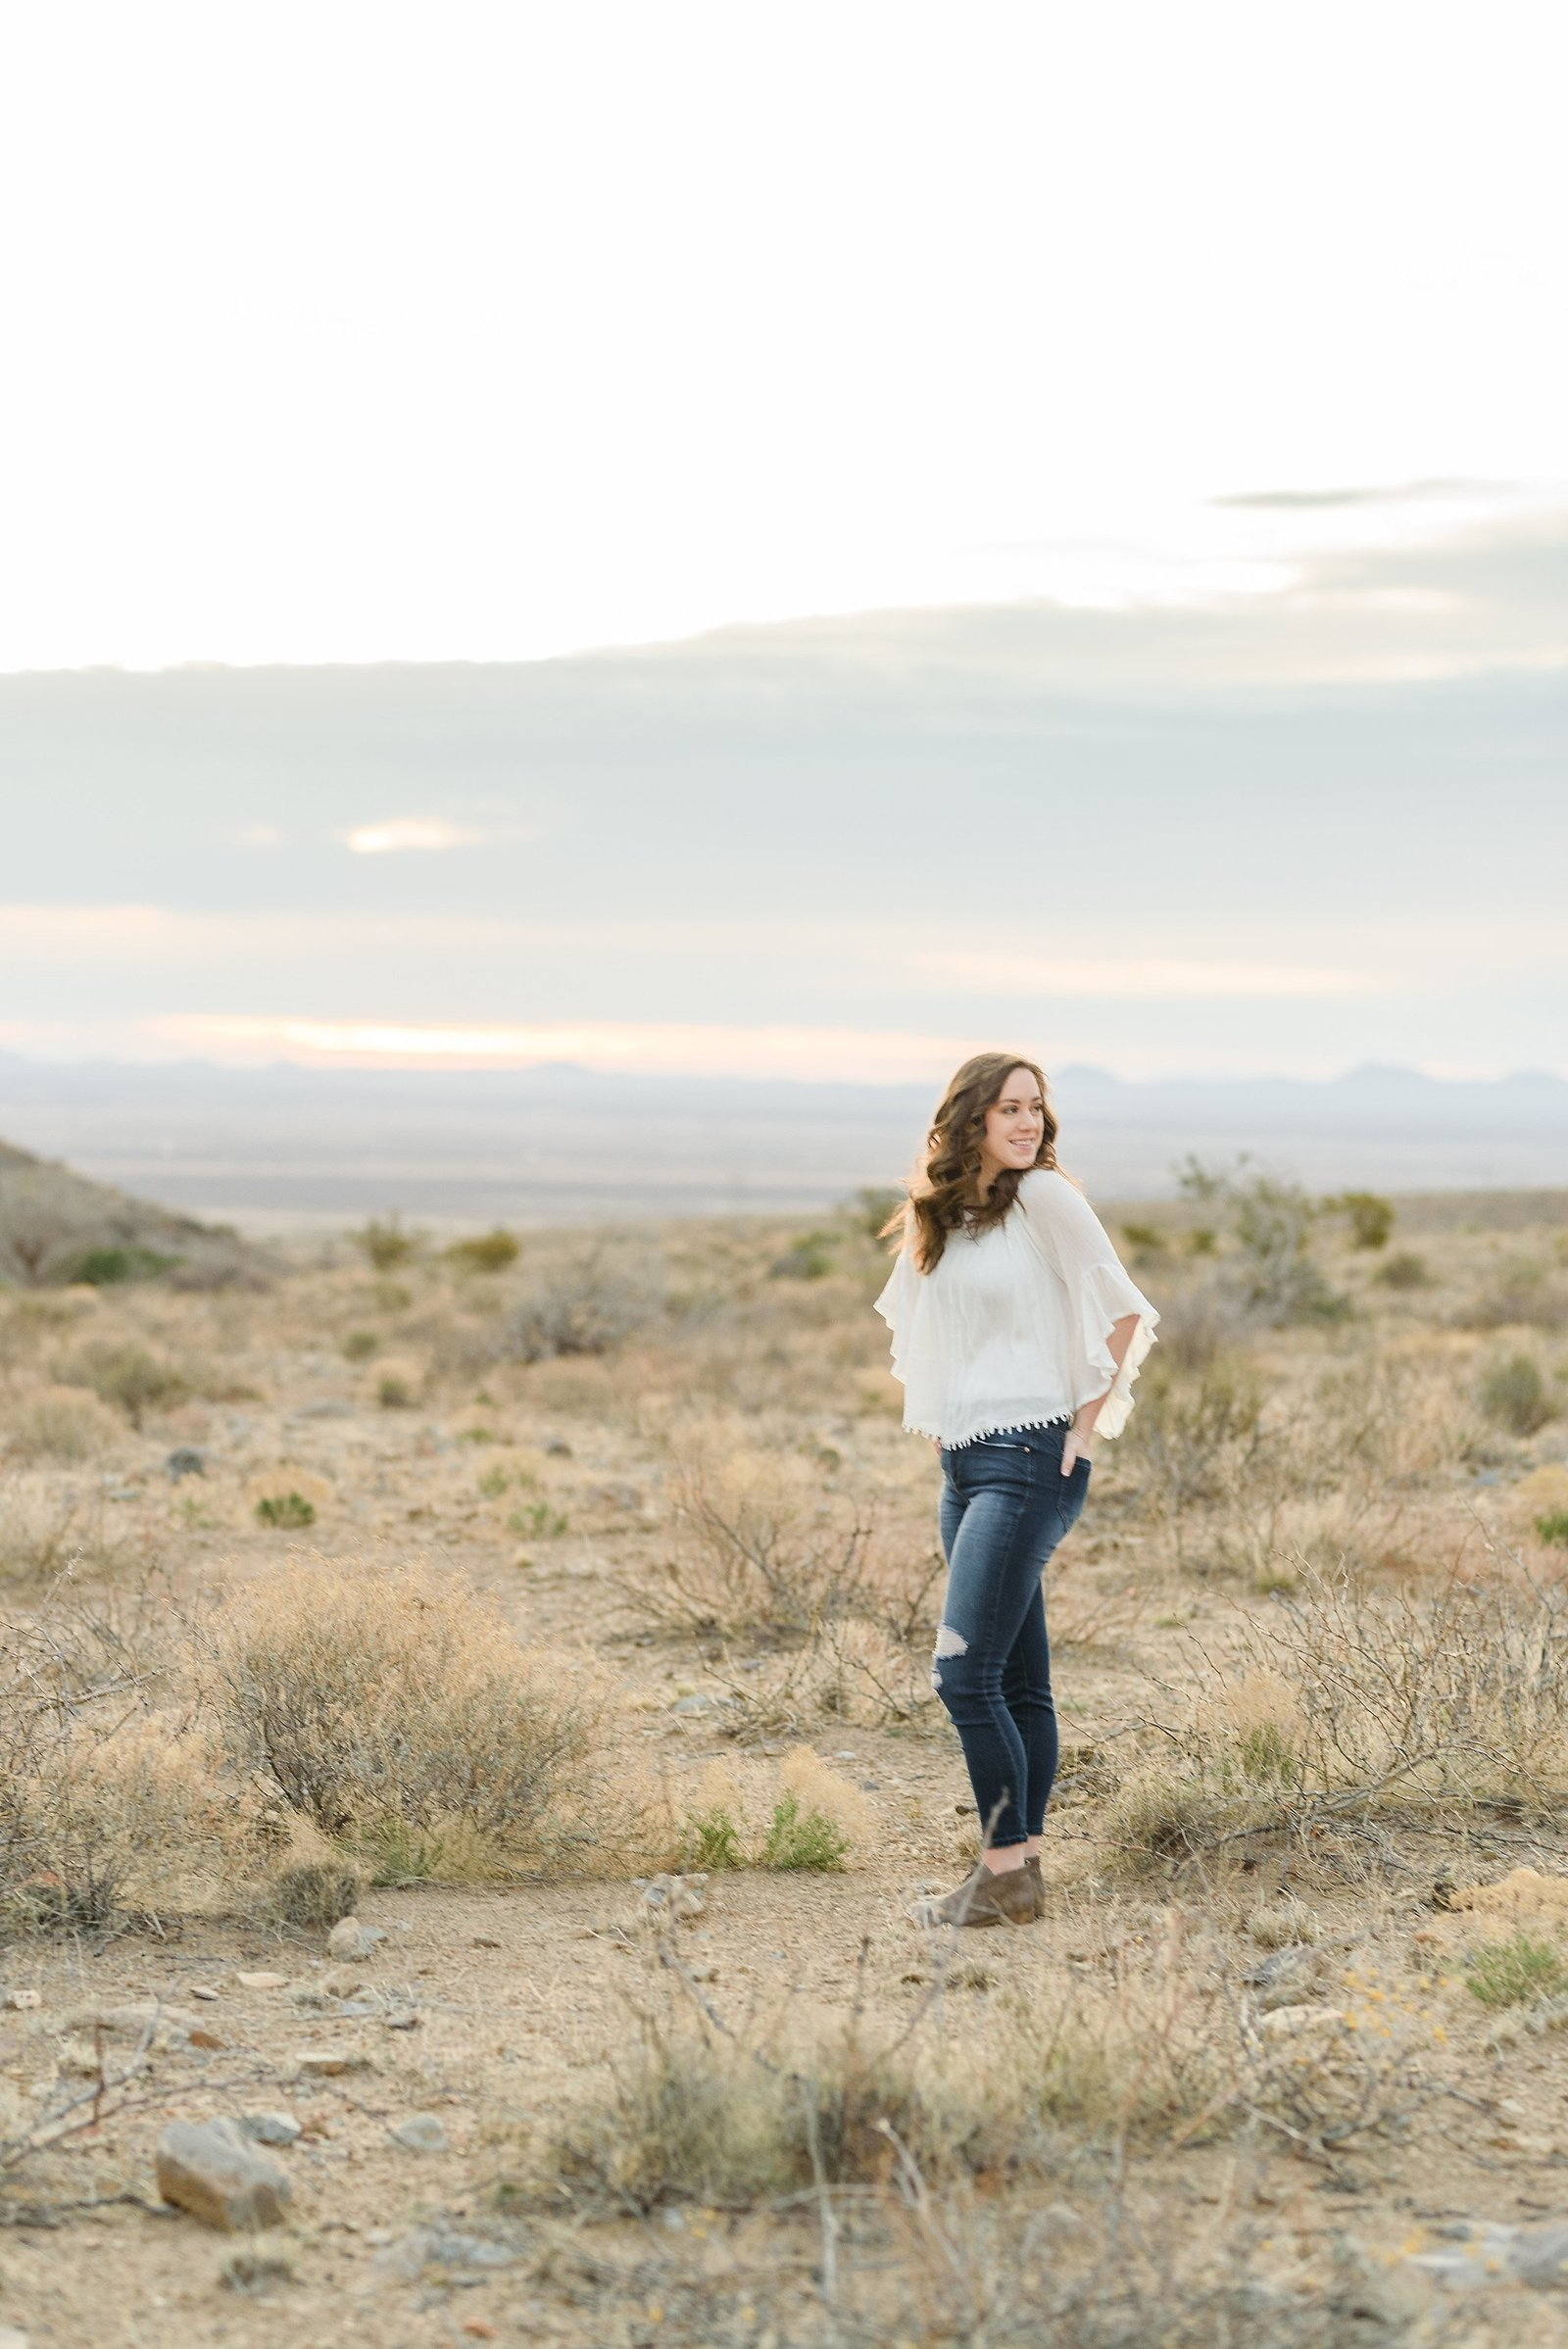 Deming Las Cruces New Mexico Family Senior Lifestyle Photographer_0076